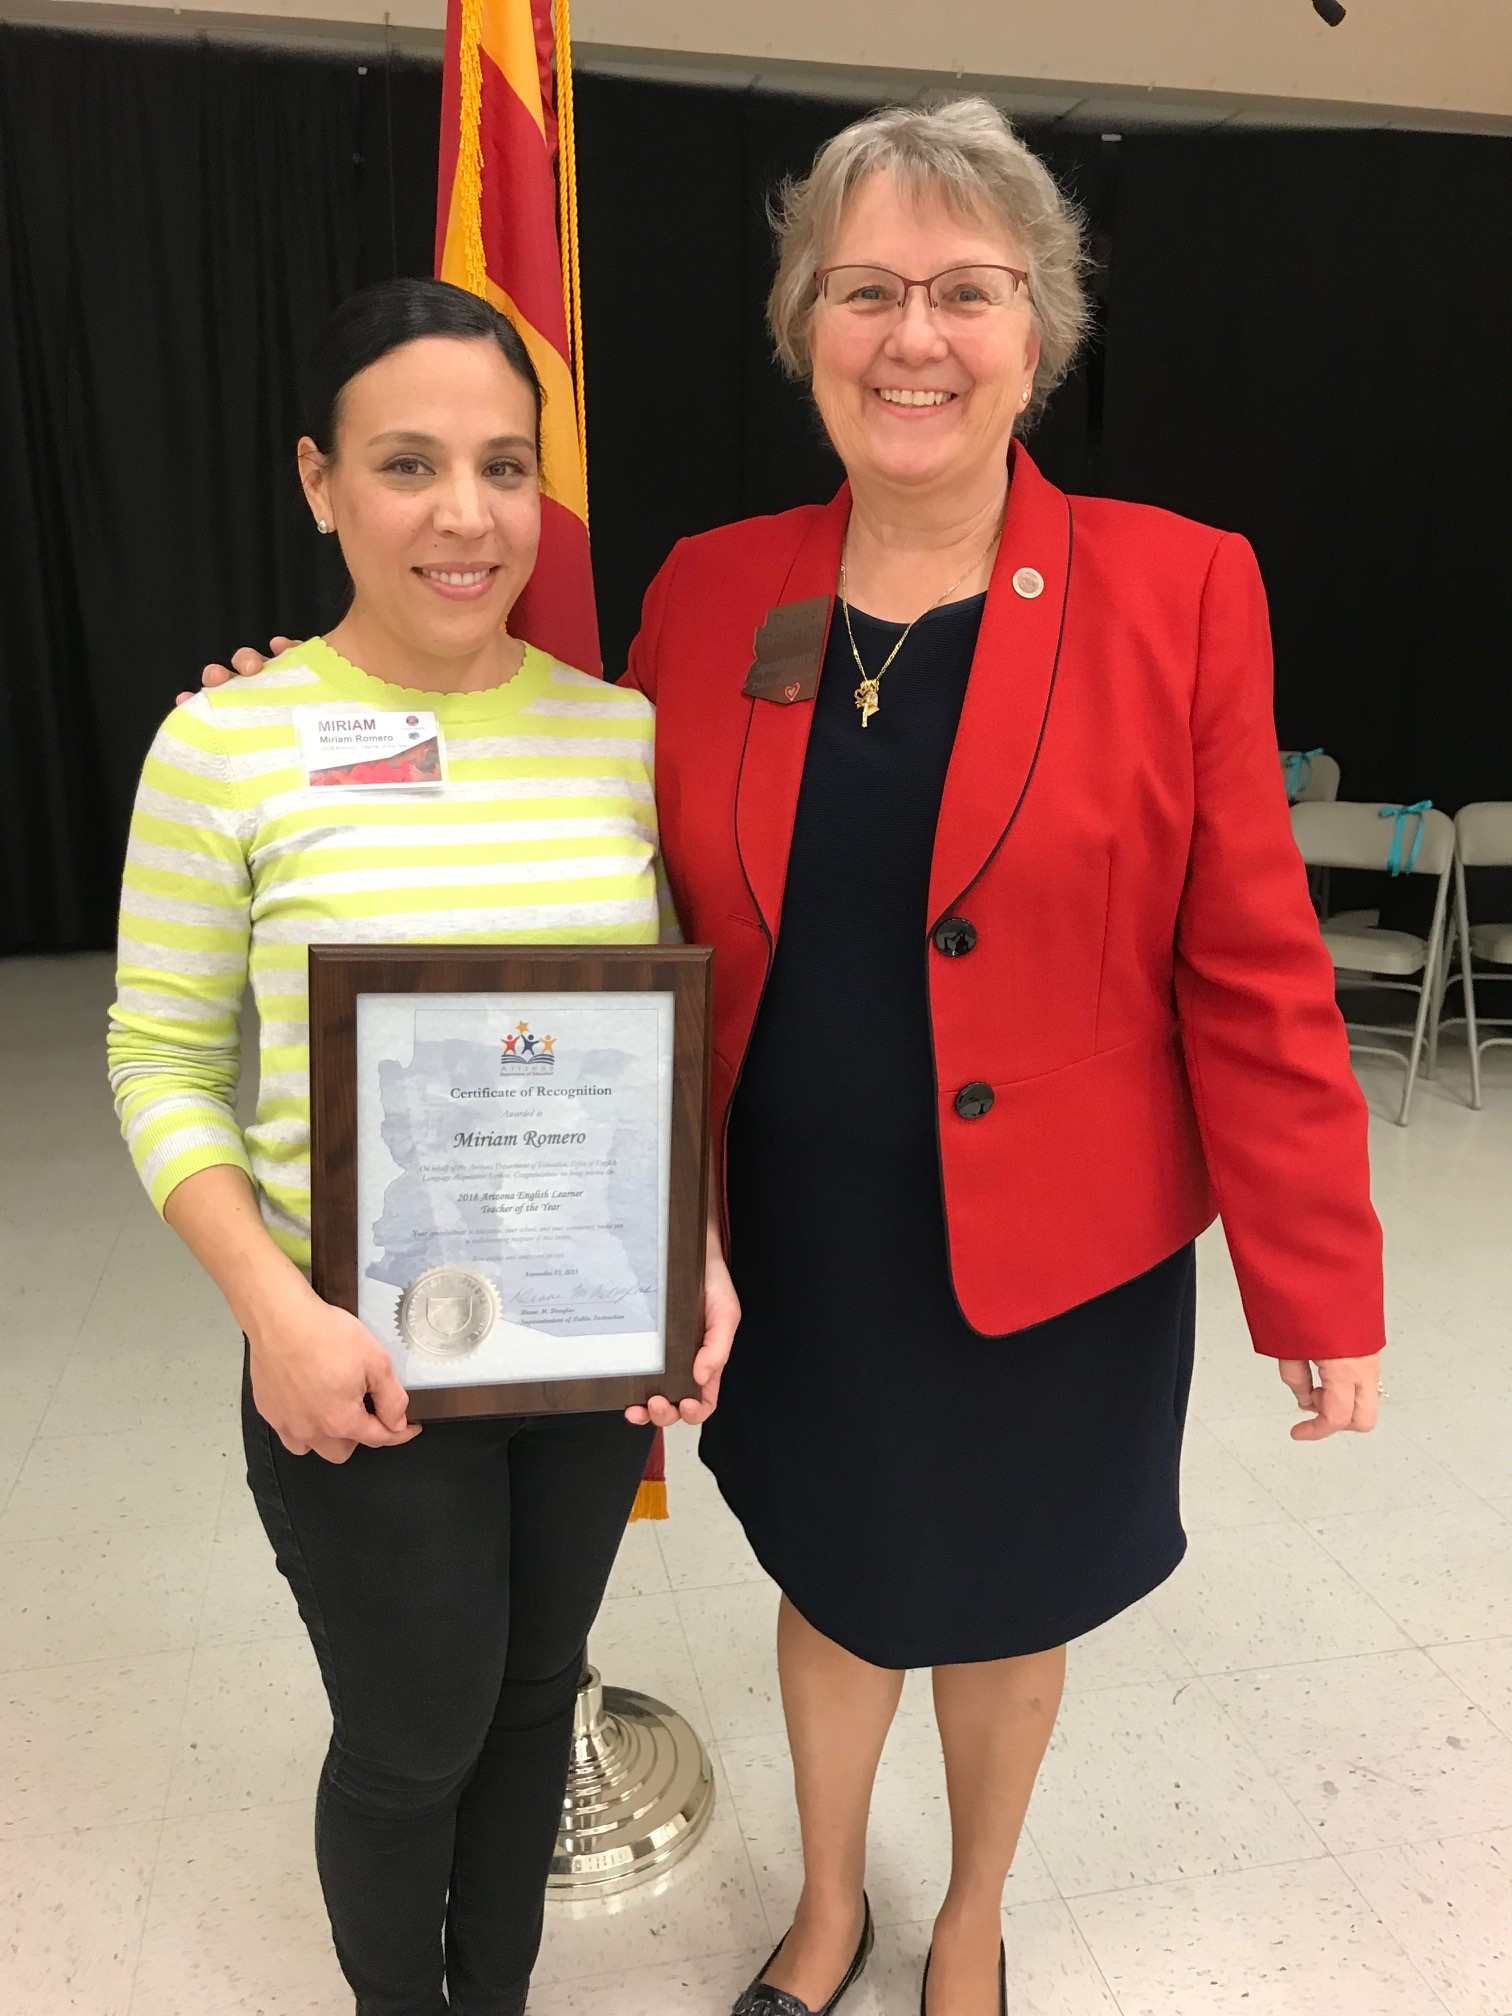 Ms. Miriam Romero, Left, From Carrillo K-5 Magnet School Has Been Named The 2018 Arizona English Language Learner Teacher Of The Year. Photo Courtesy Of Tucson Unified School District